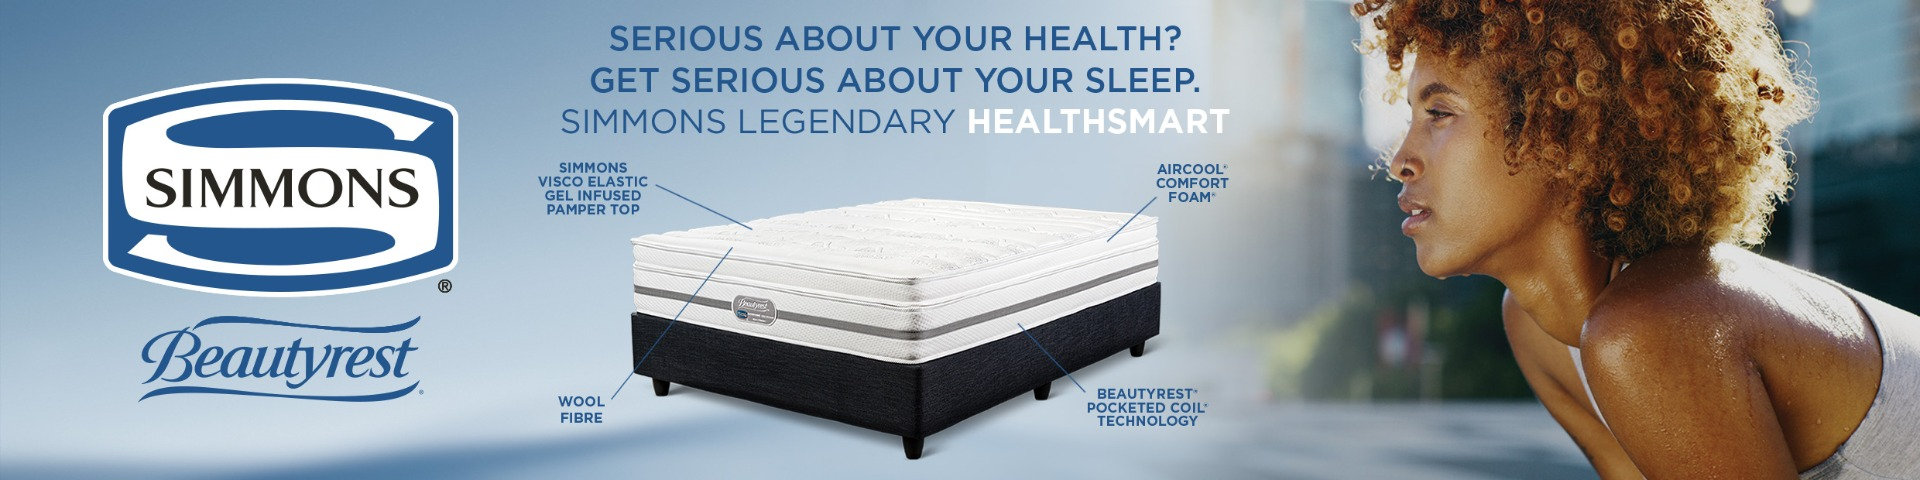 Brand - Simmons beds